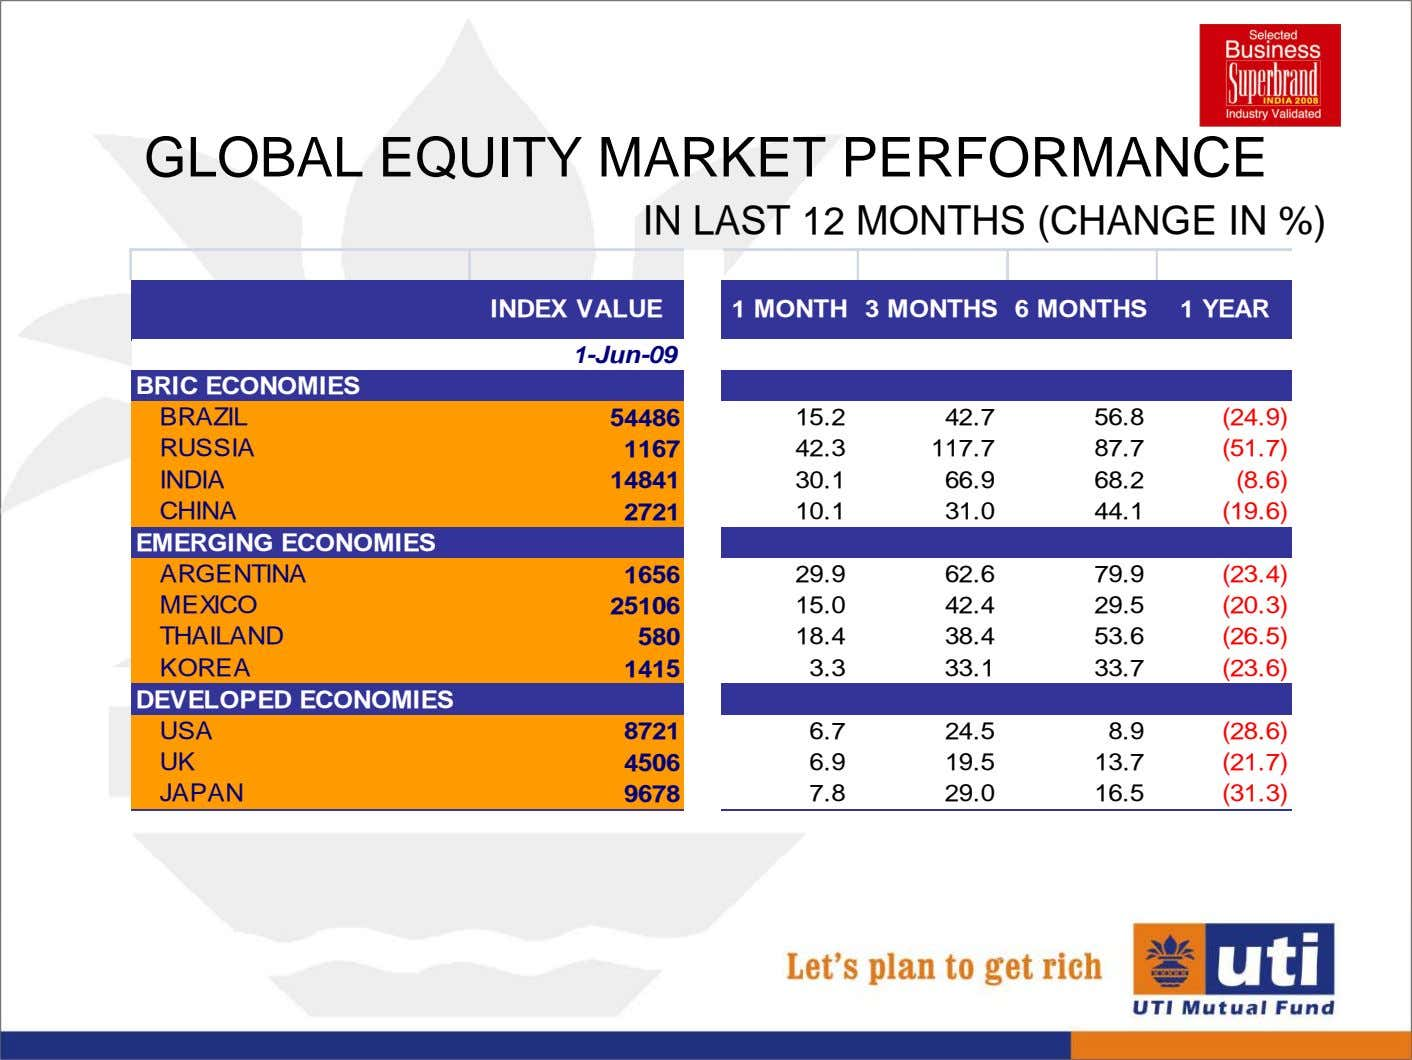 GLOBAL EQUITY MARKET PERFORMANCE IN LAST 12 MONTHS (CHANGE IN %) INDEX VALUE 1 MONTH